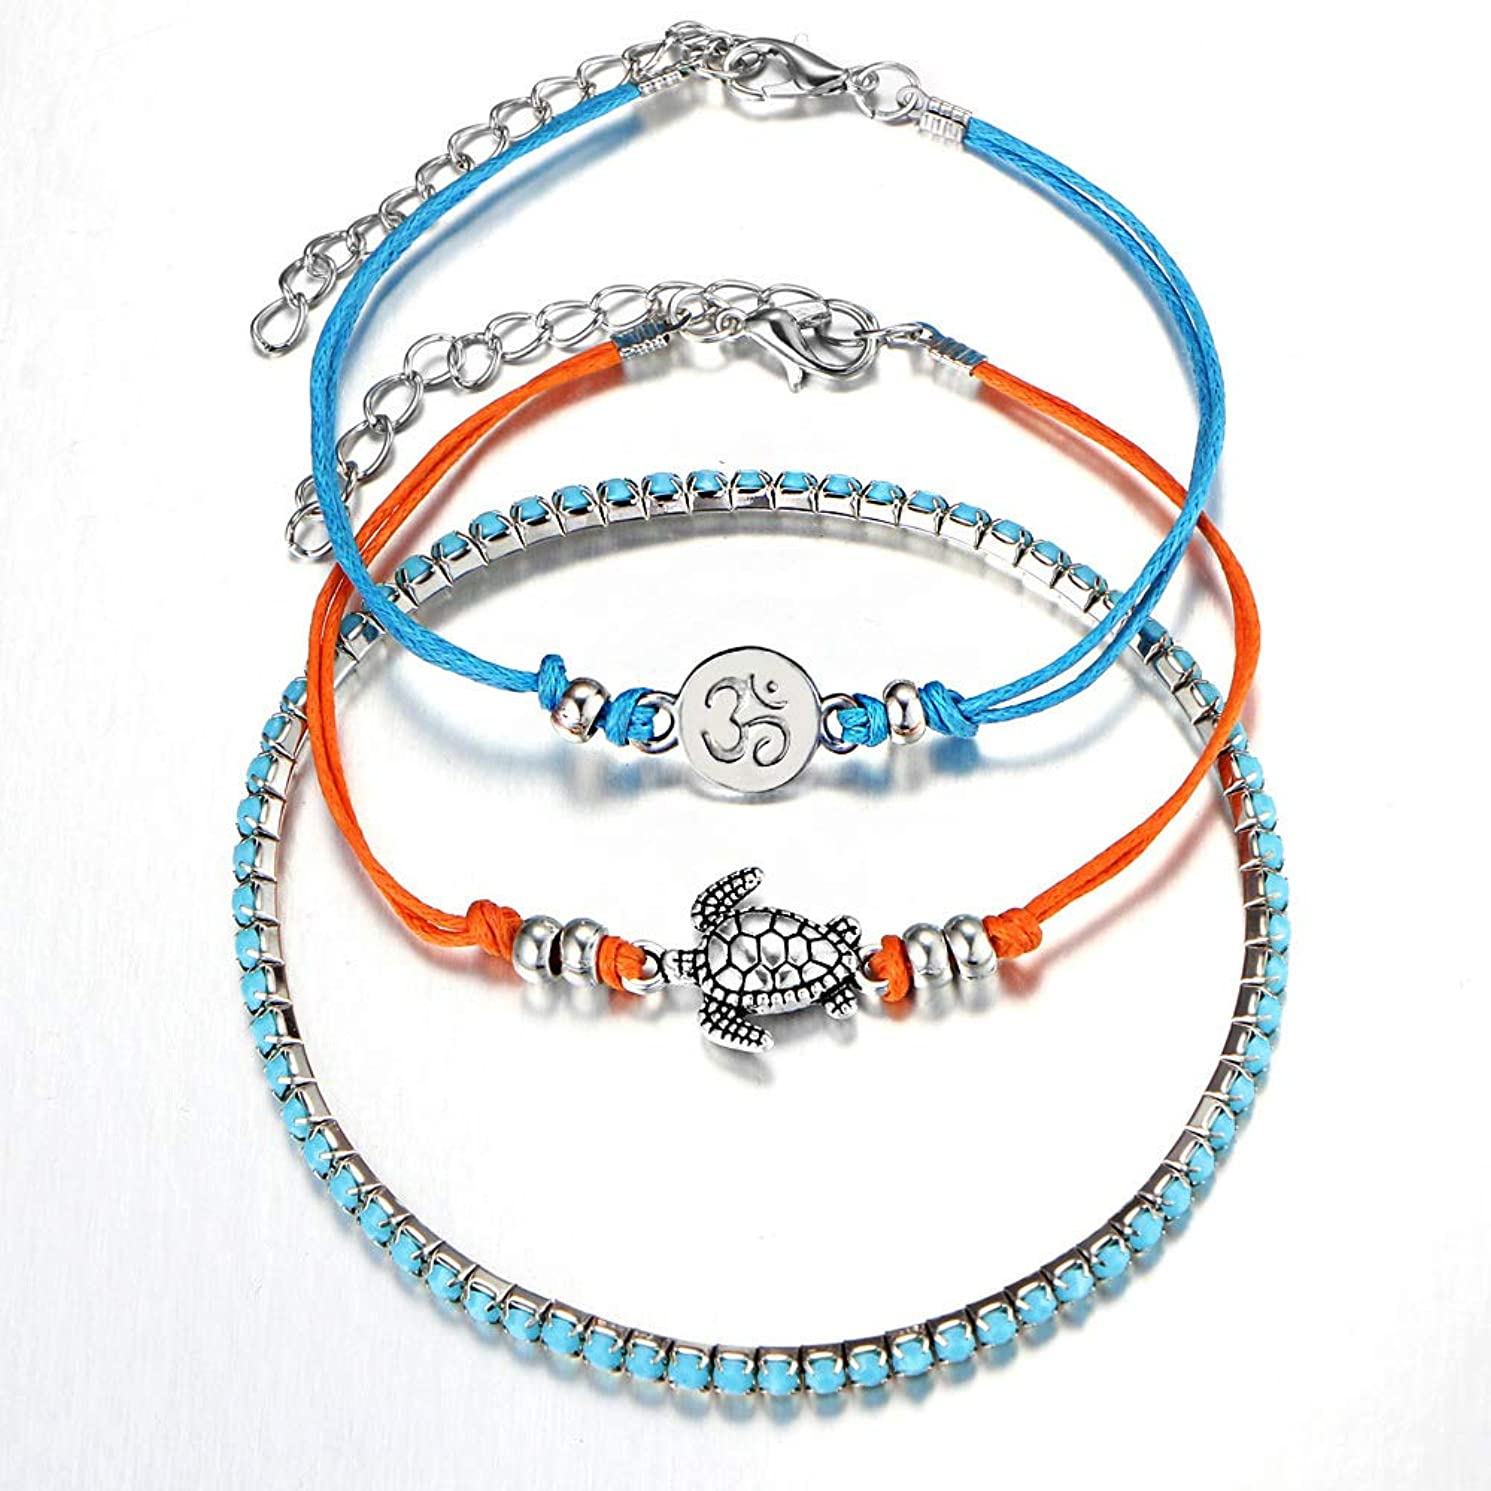 Chamqueen Multilayer Turtle Anklets Layered Rope Foot Jewelry Boho Anklets with Turtle Pendant for Women